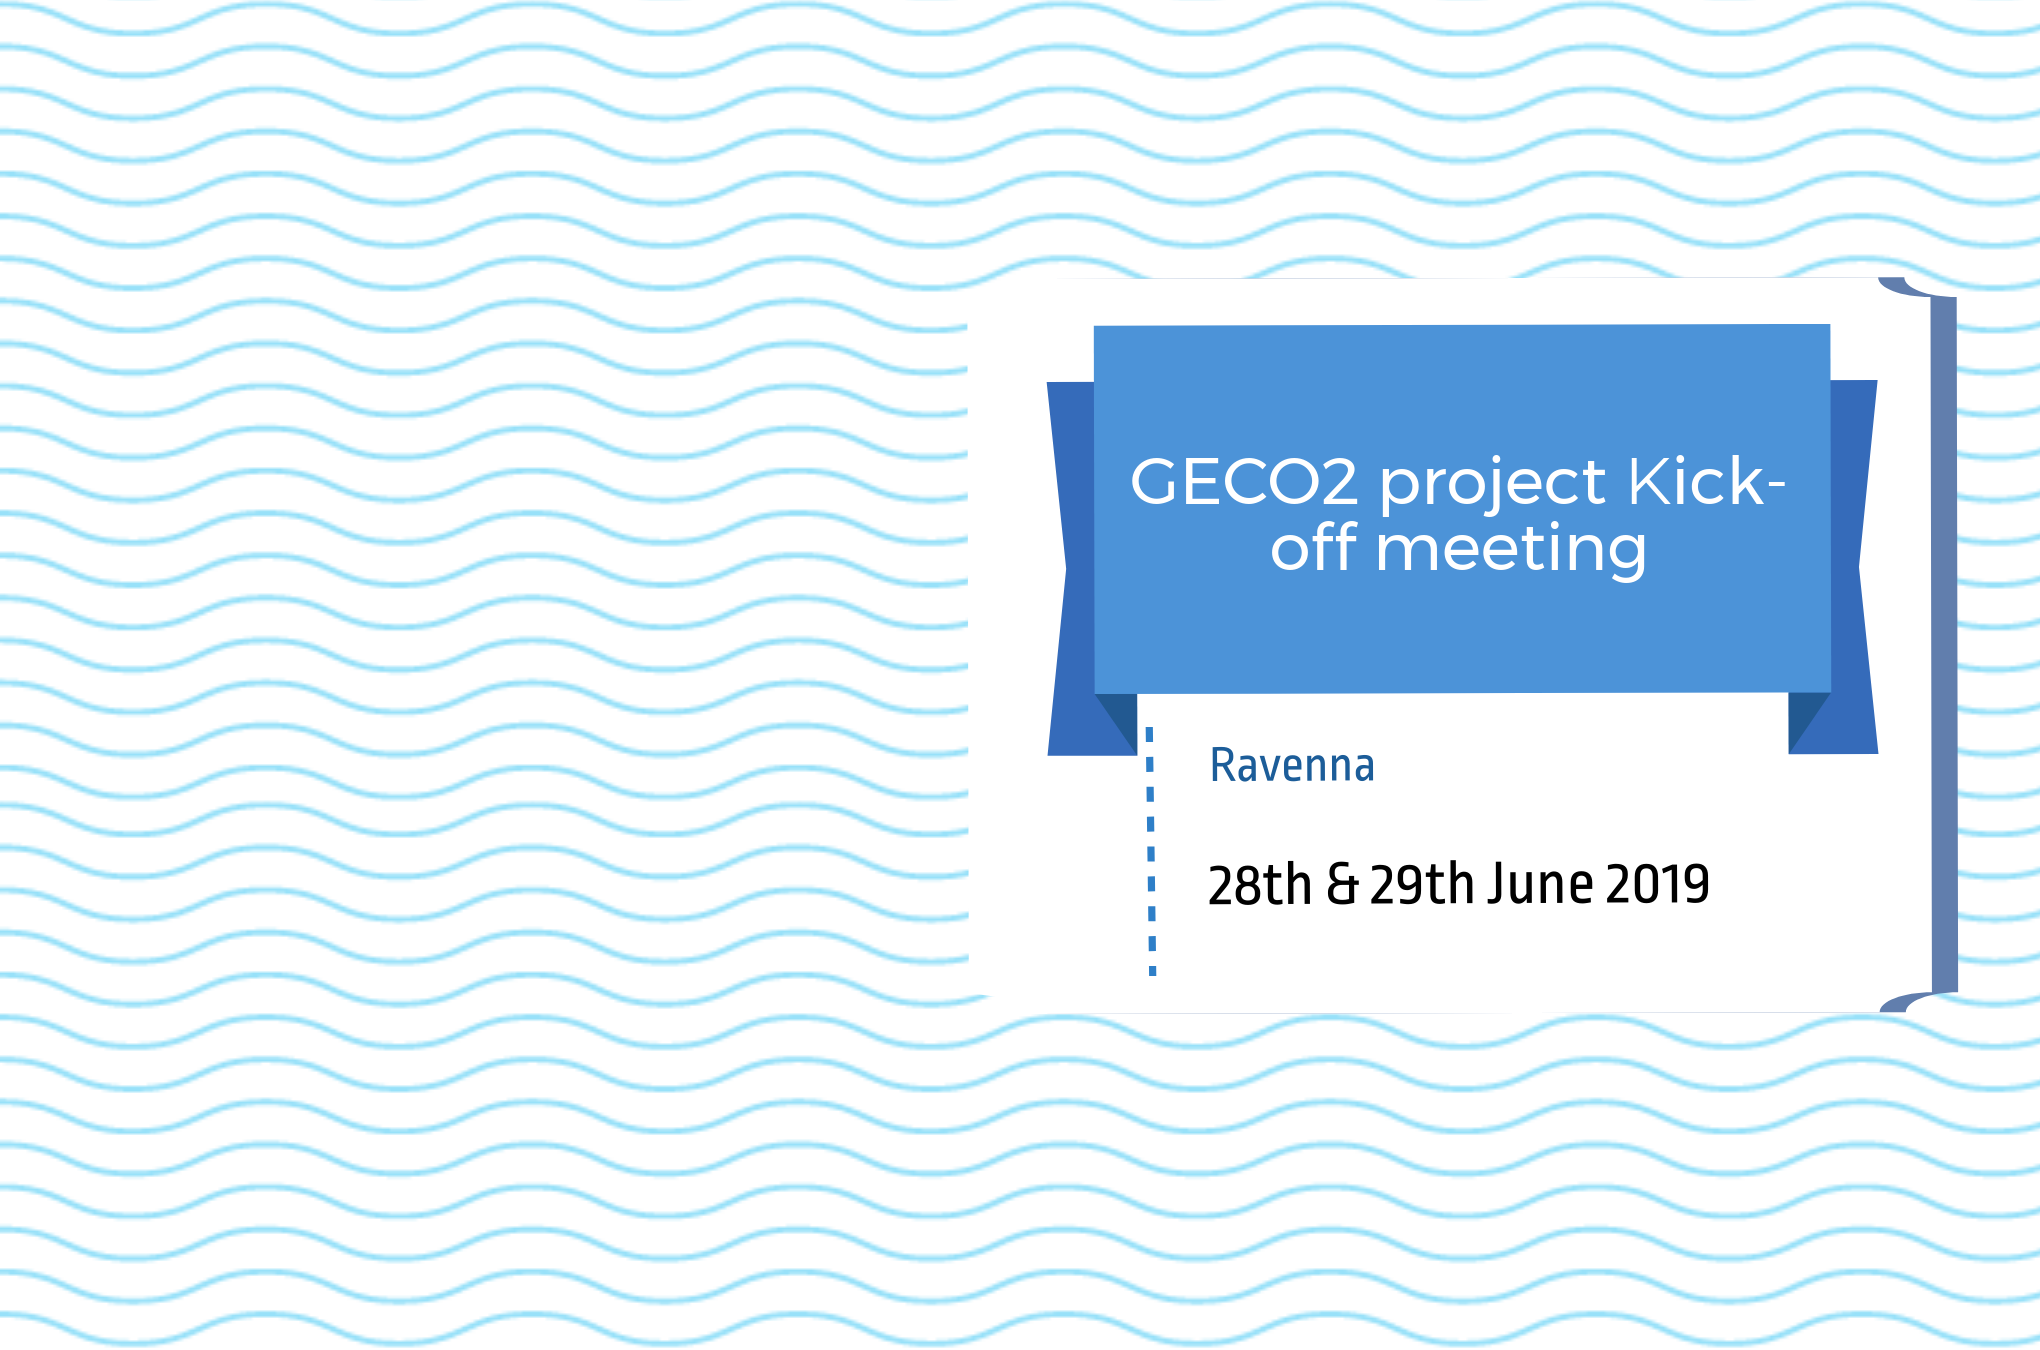 GECO2 project Kick-off meeting